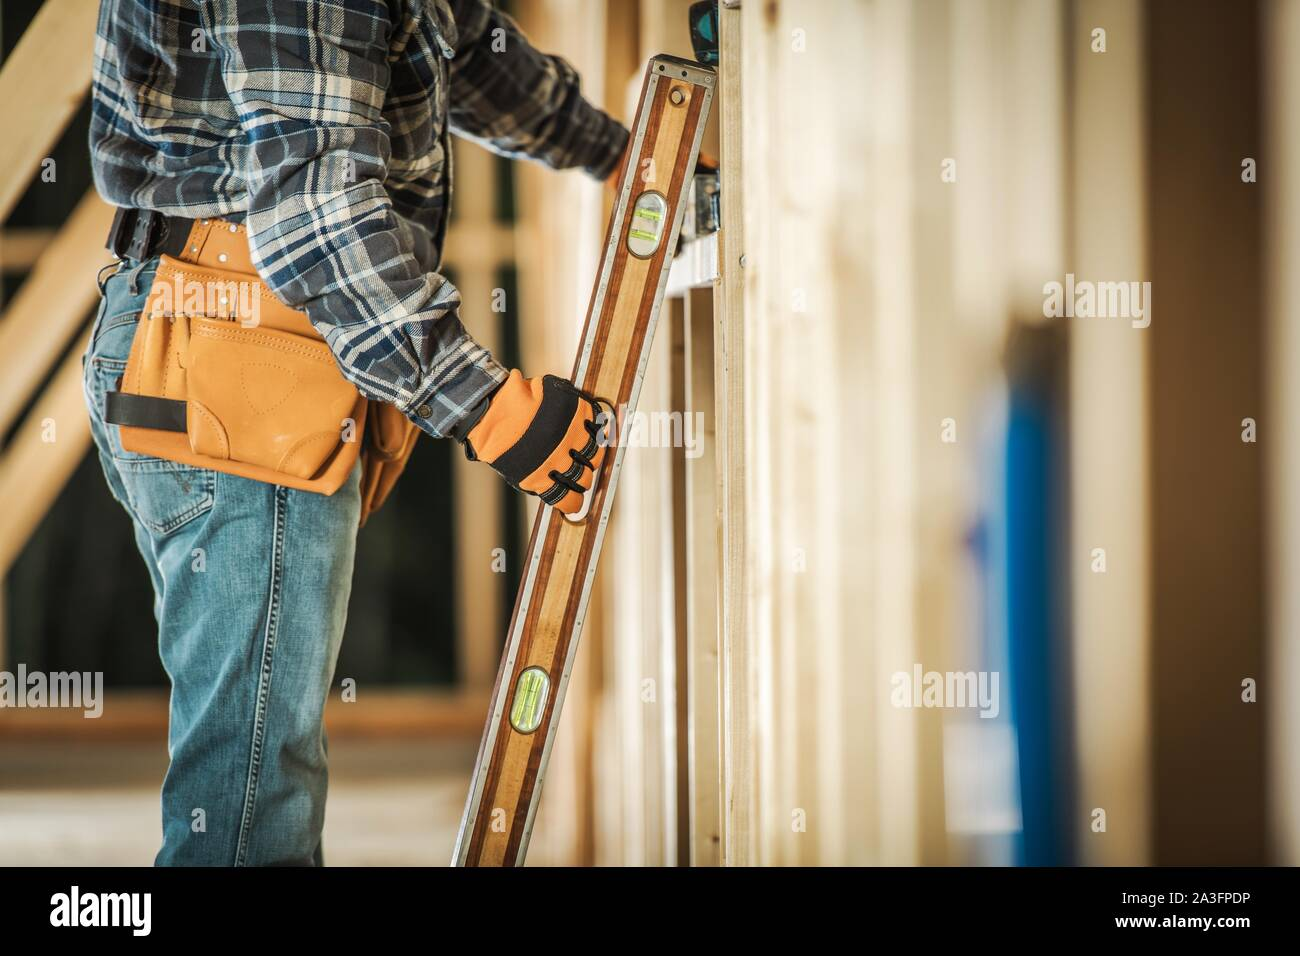 Contractor Worker Taking Spirit Level Tool to Make Sure the Wooden Frame Alignment is Correct. Construction Tools and Building Technologies. Stock Photo